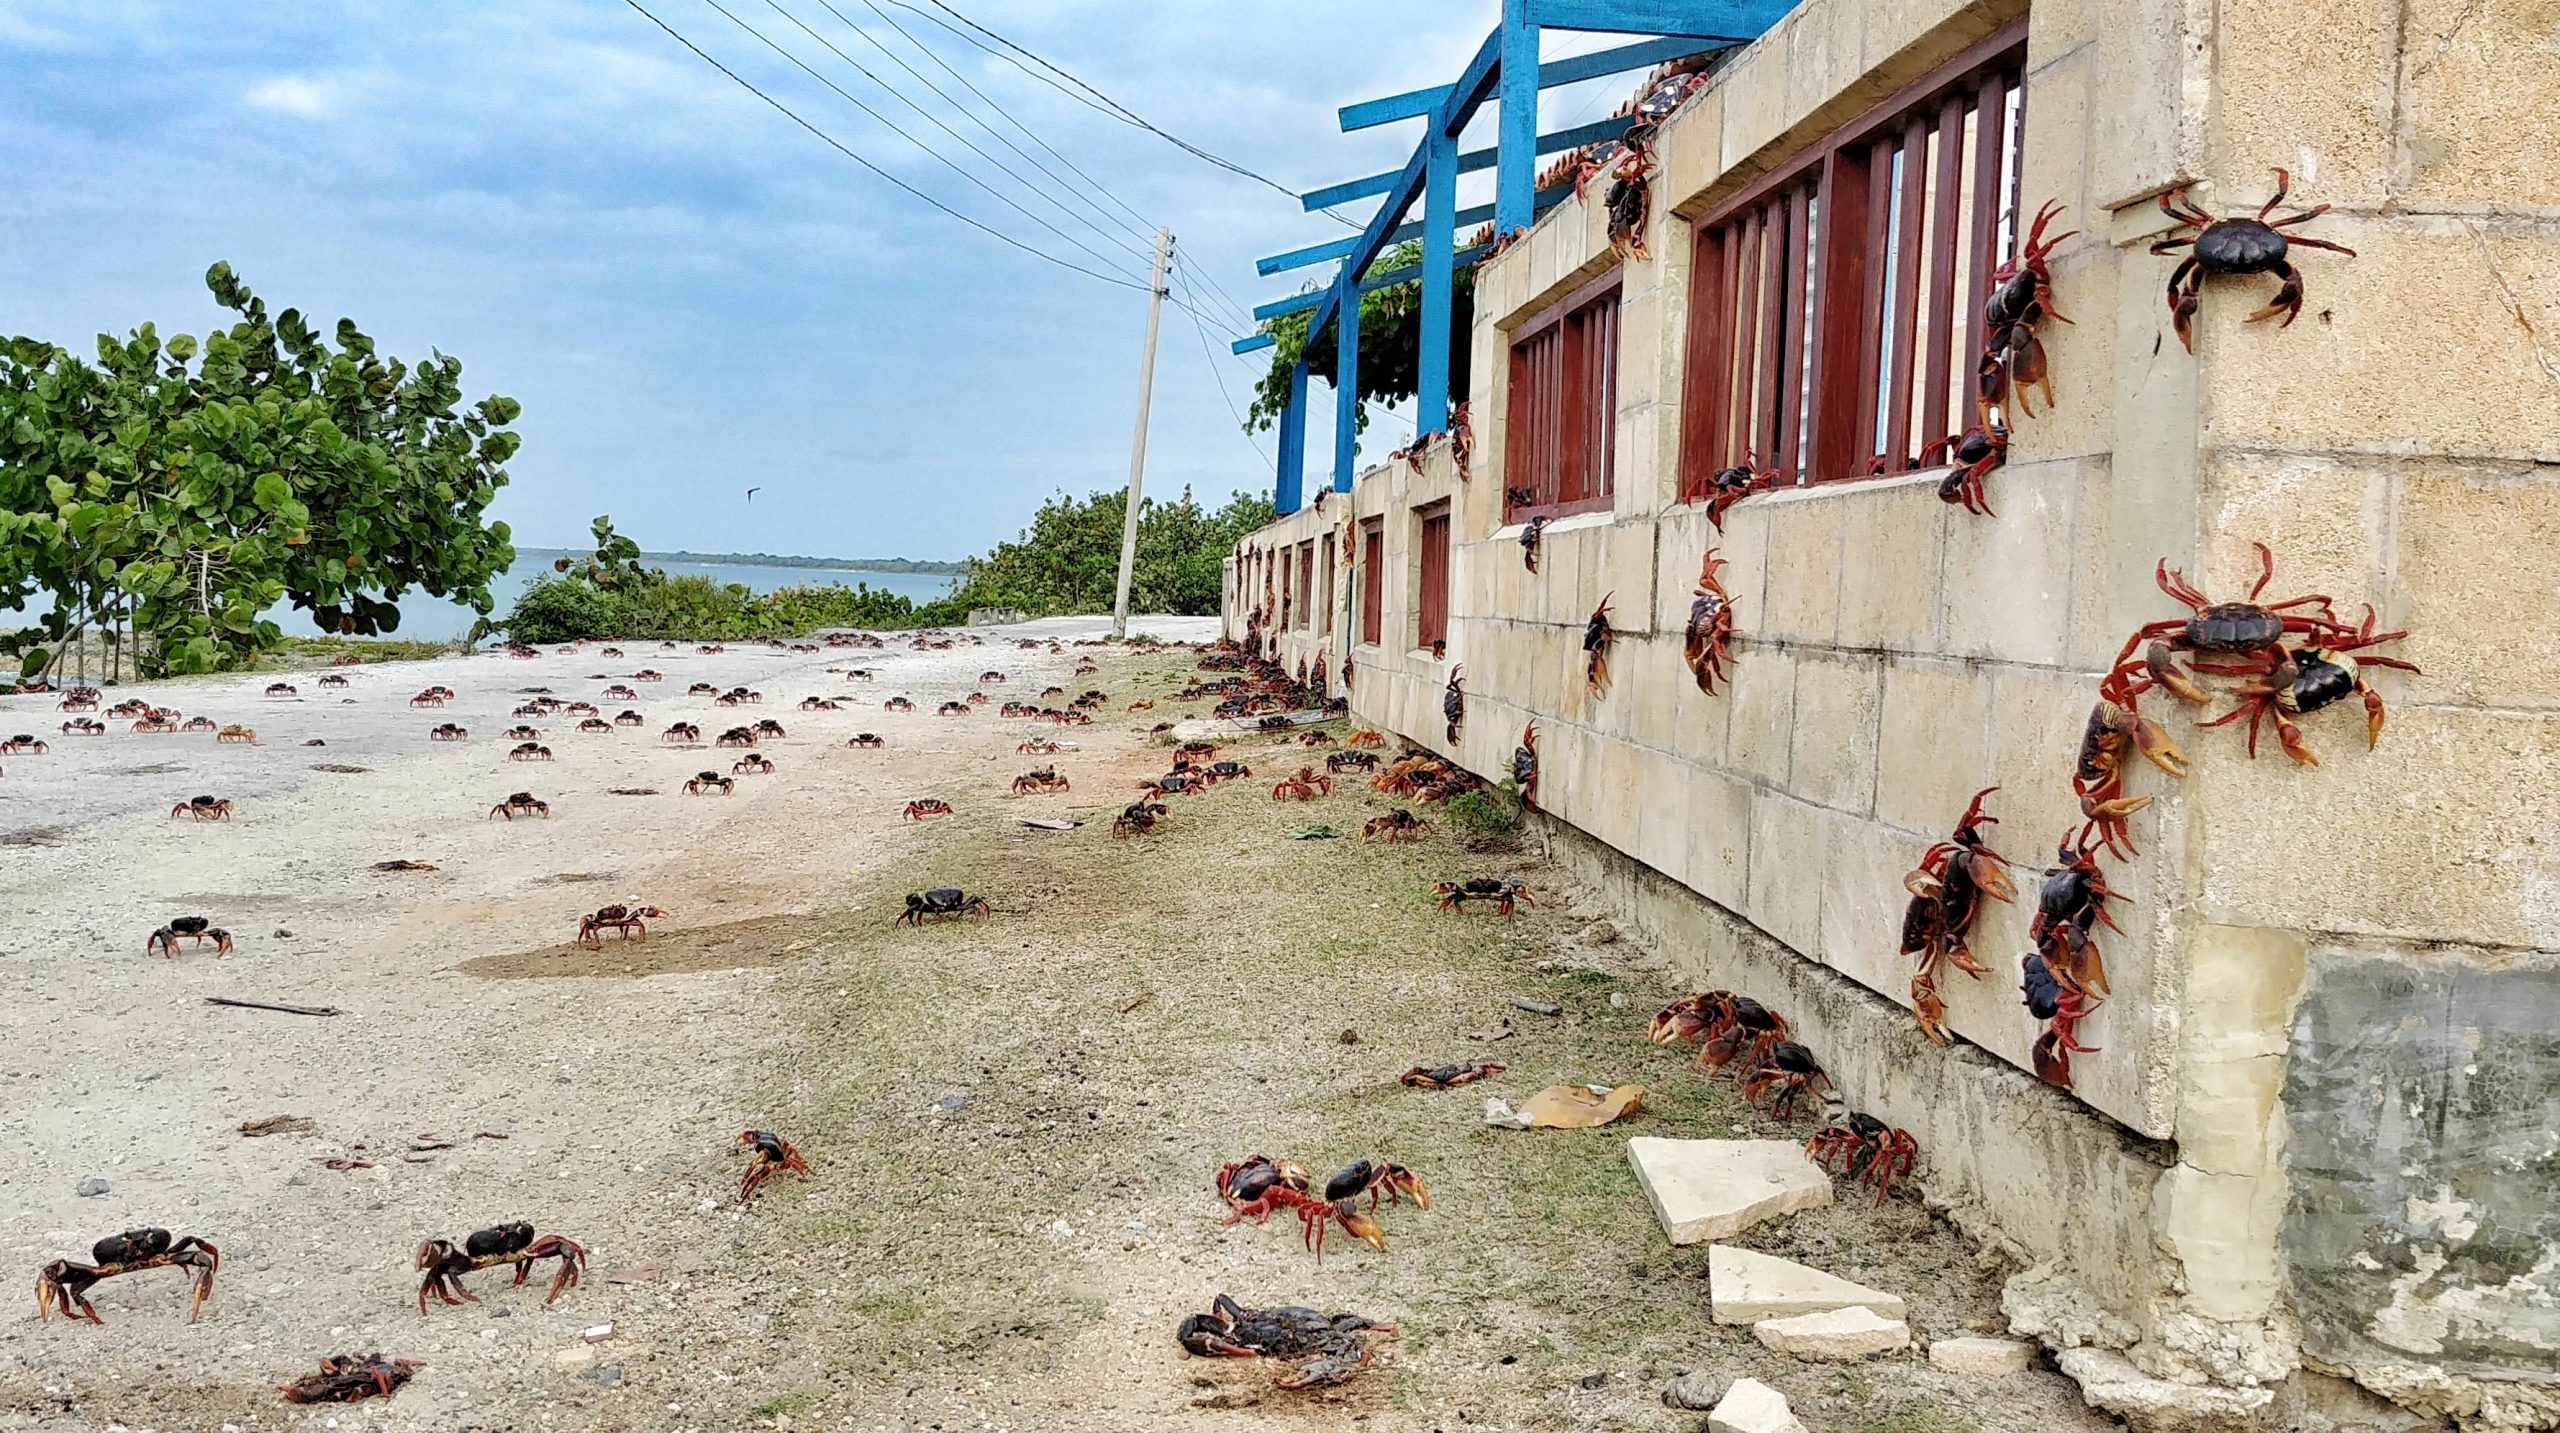 Crab invasion in Cuba